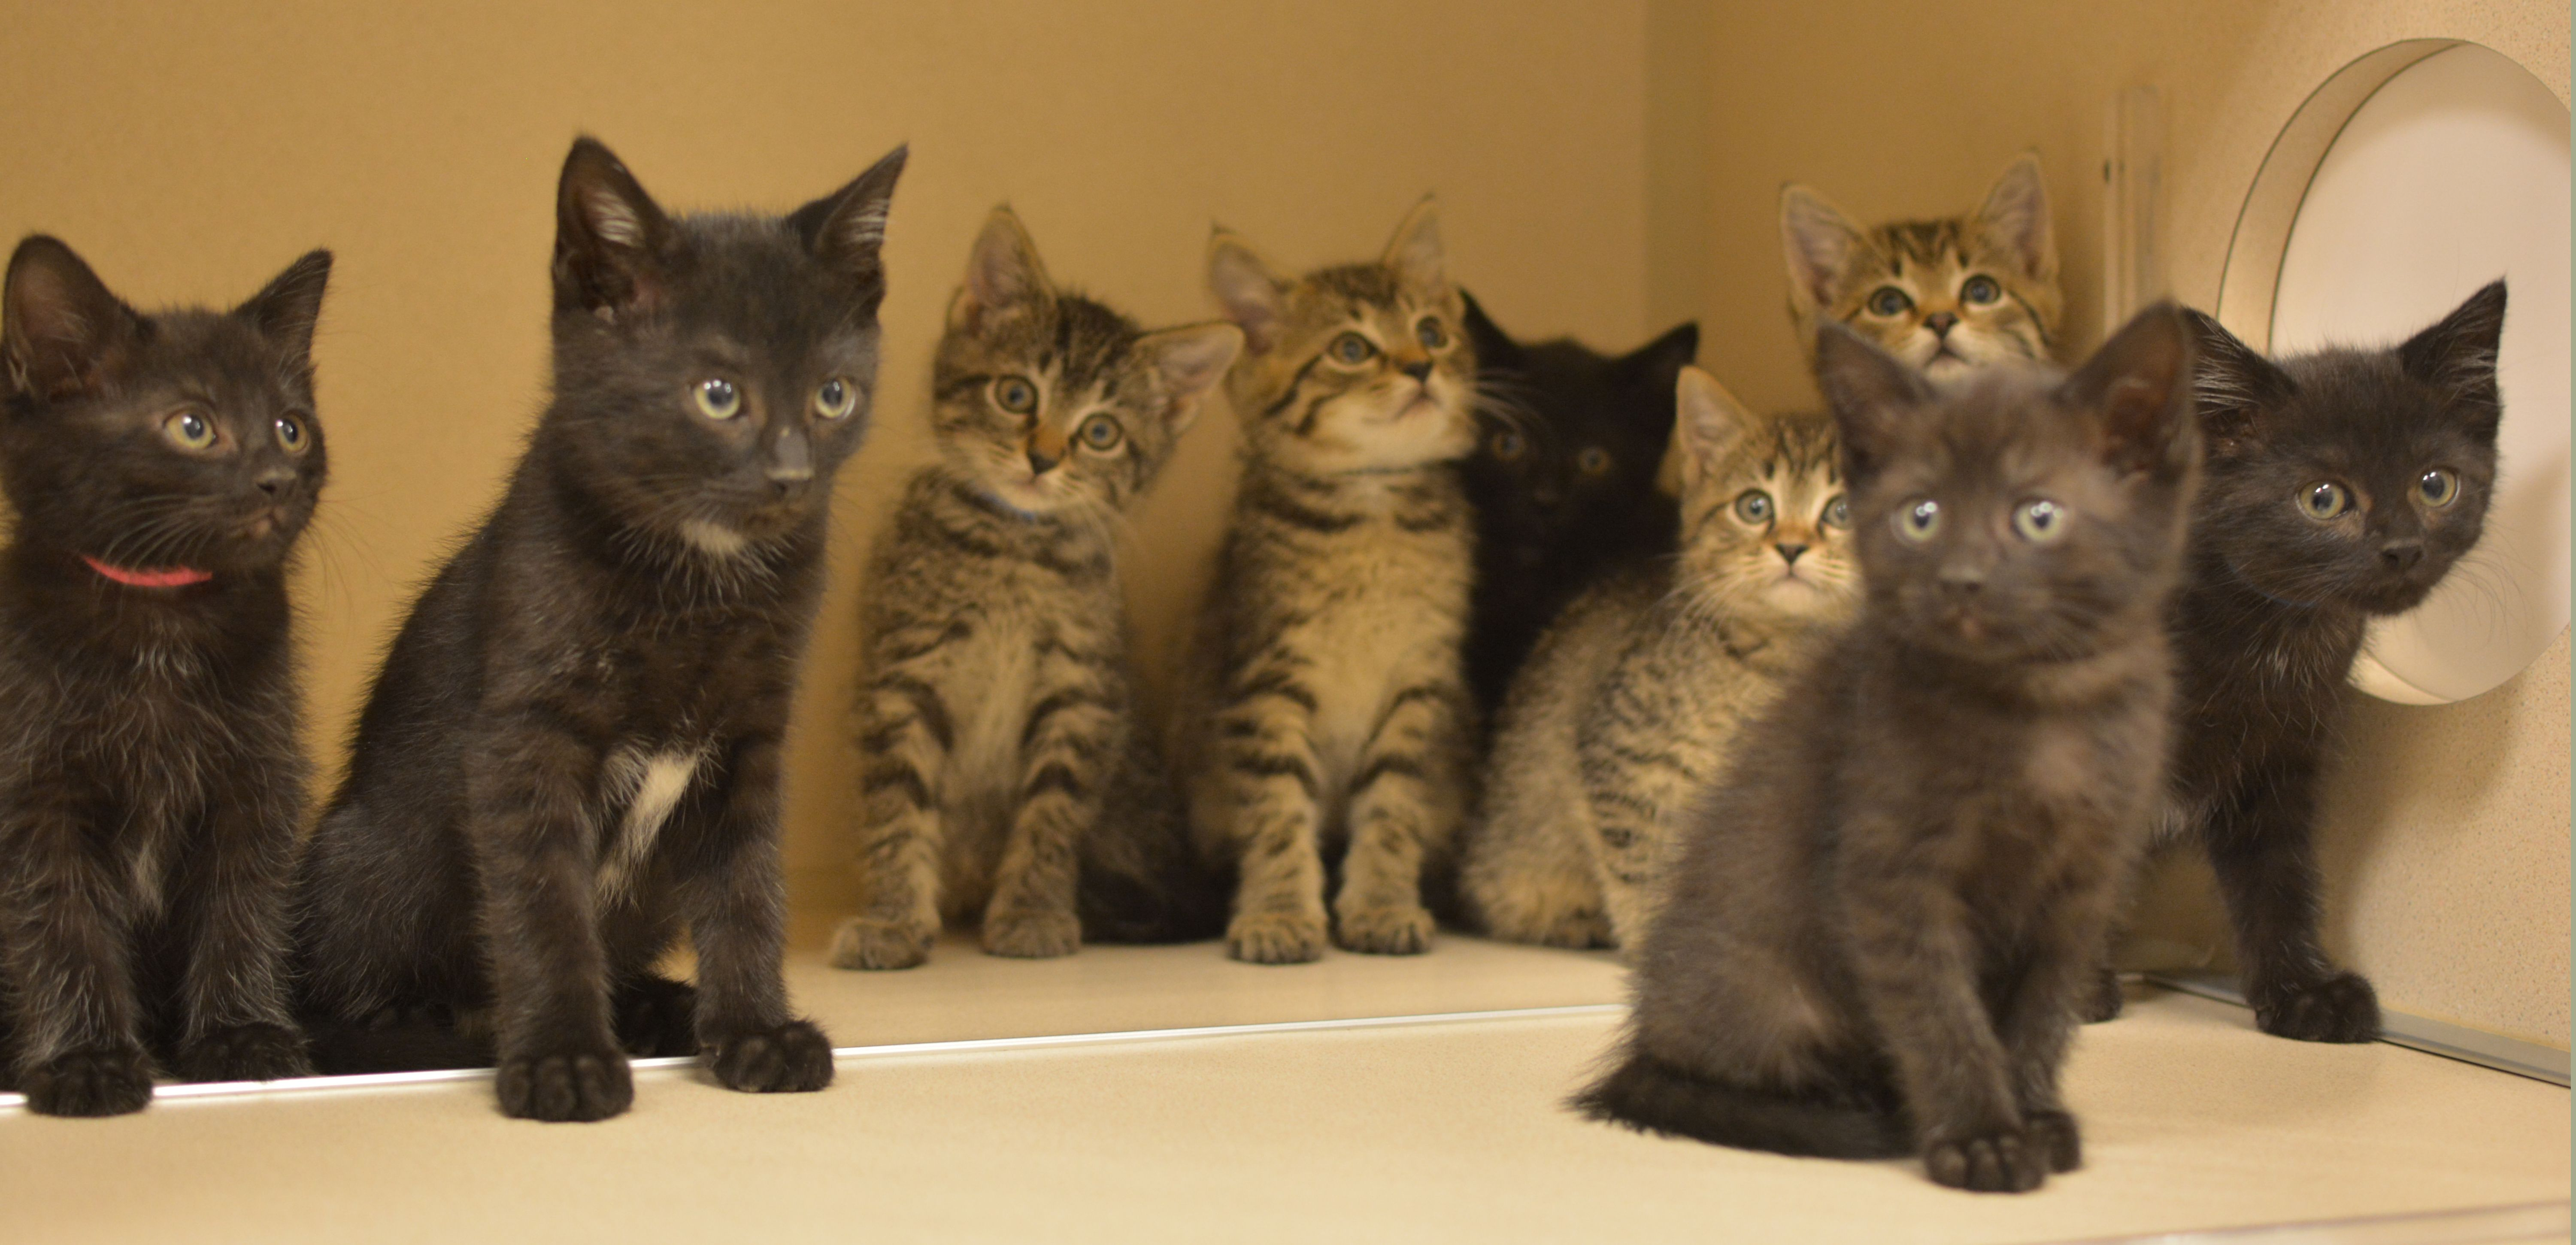 What is cuter than 10 kittens from Tennessee? NOTHING